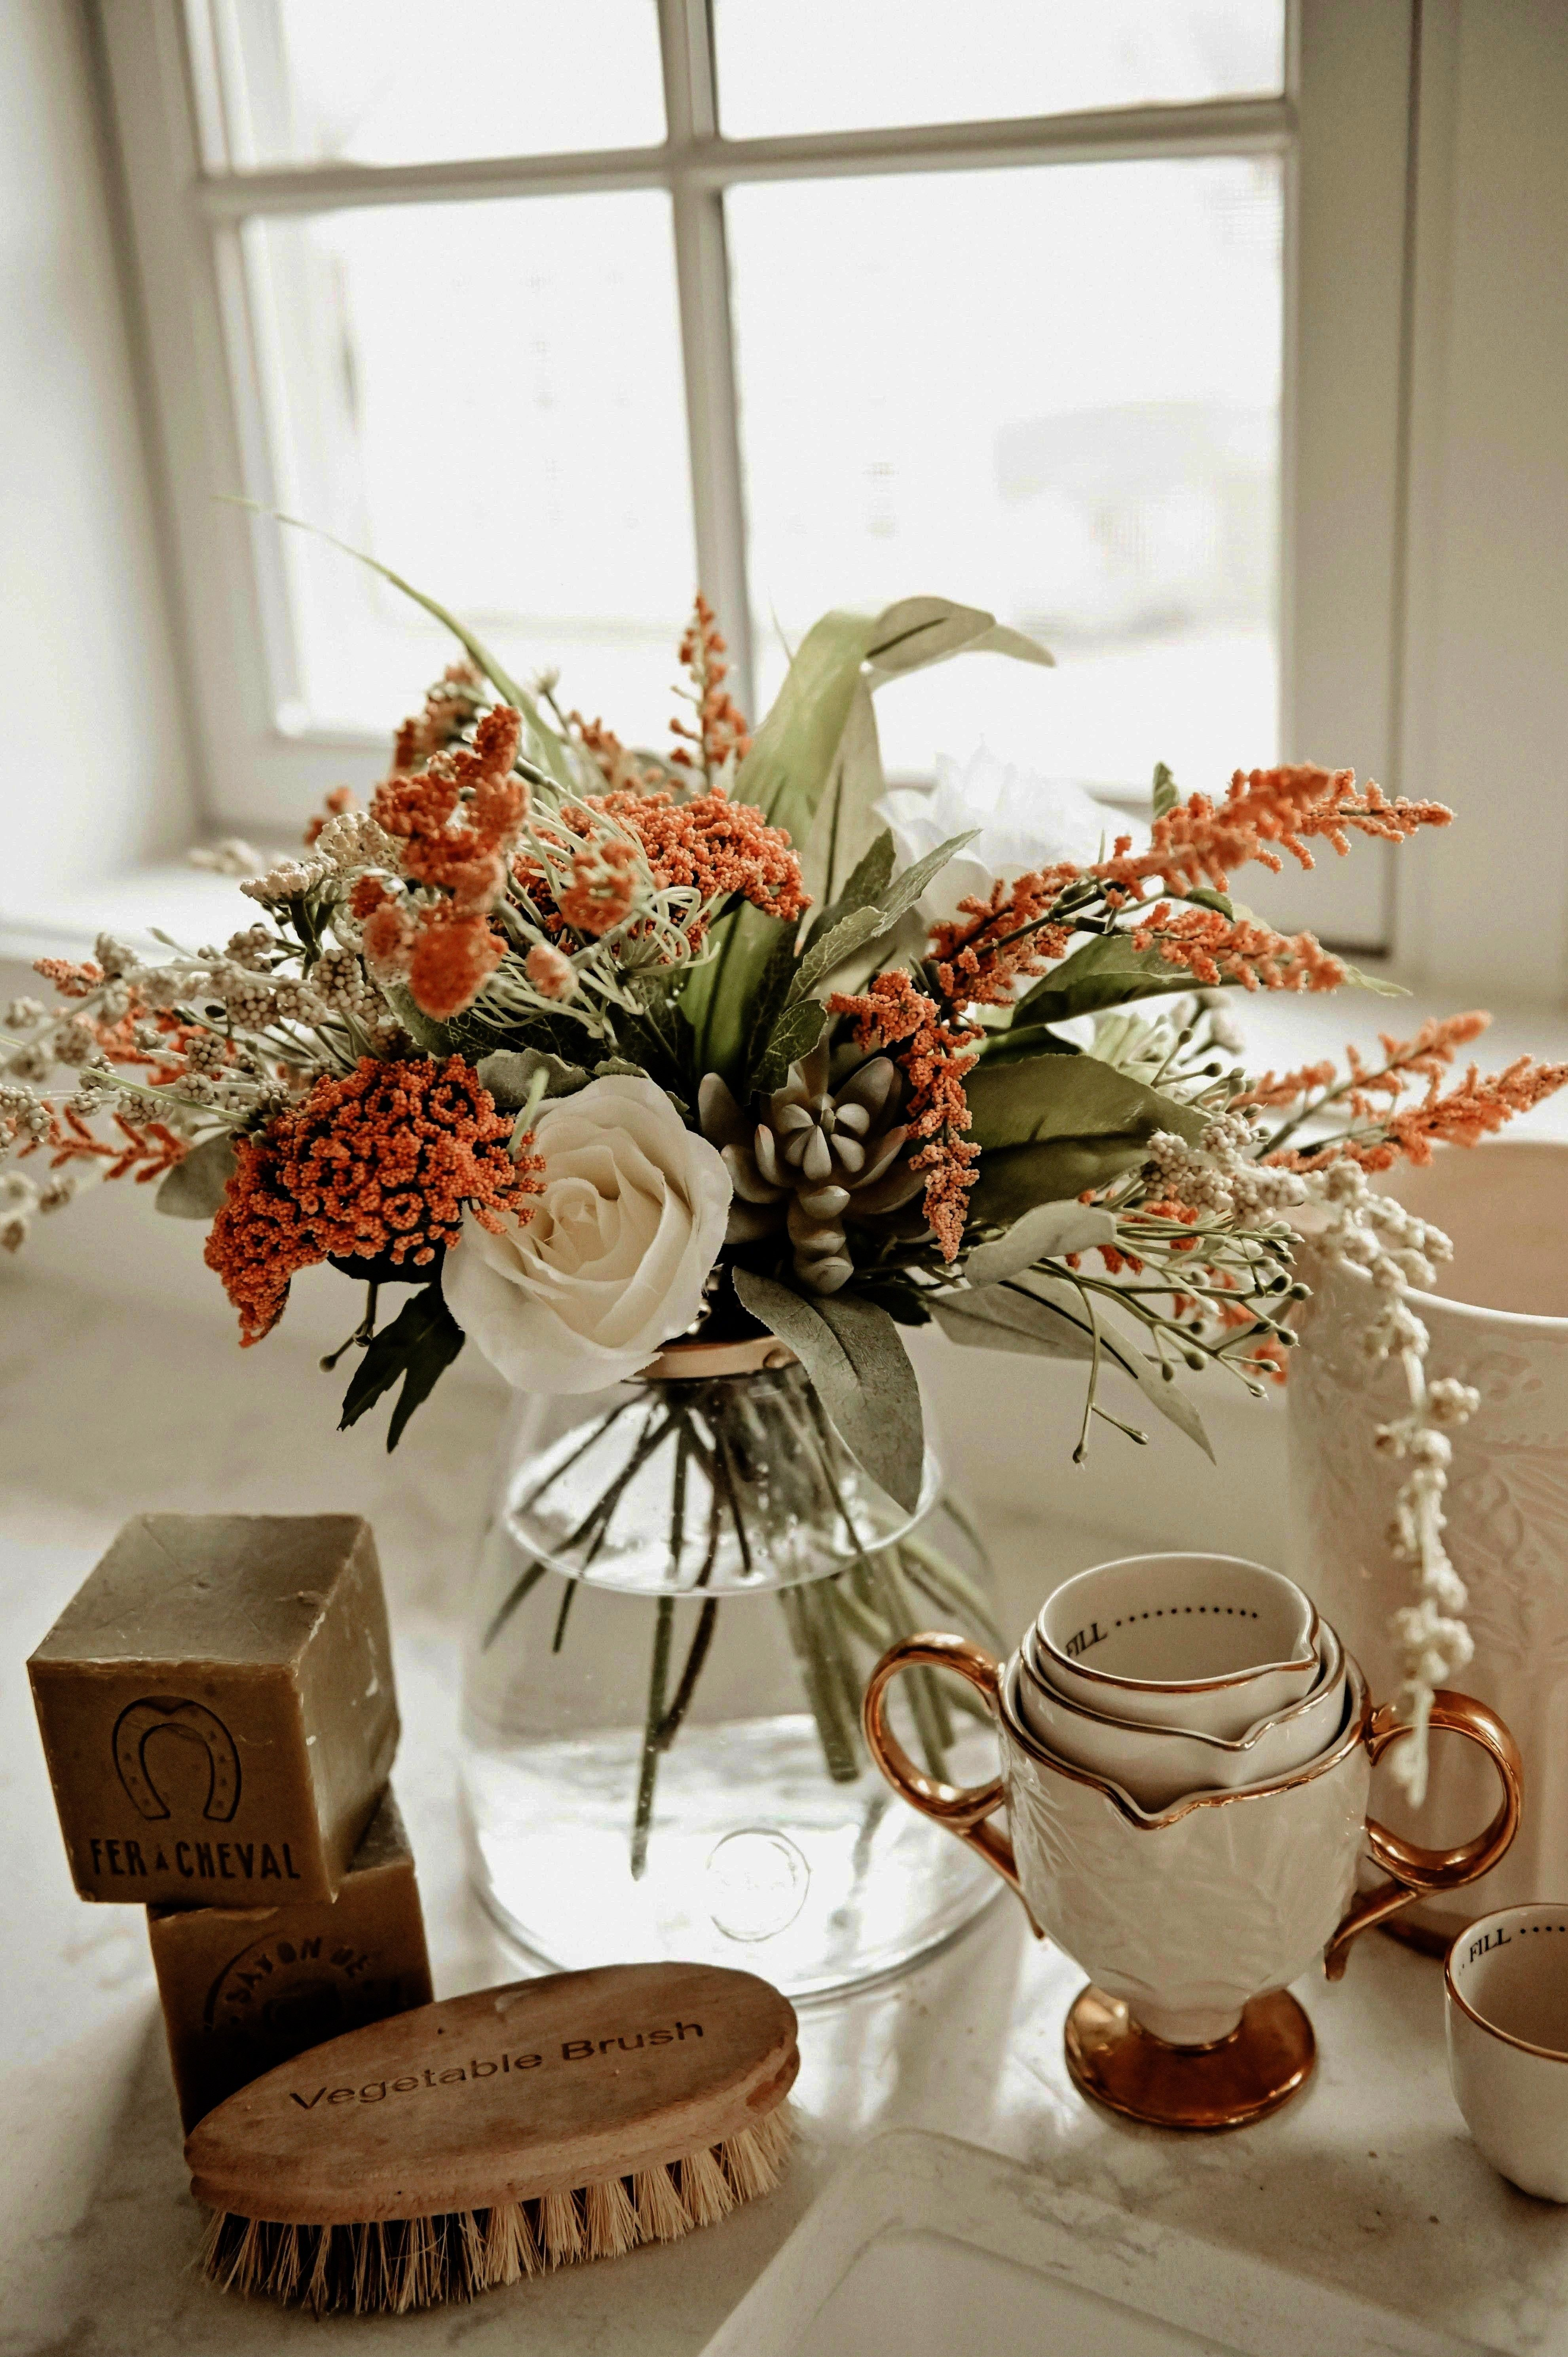 Proof Faux Floral Arranging  The Easiest Trick For Fool Proof Faux Floral Arranging The Easiest Trick For Fool Proof Faux Floral Arranging  The Easiest Trick For Fool Pro...